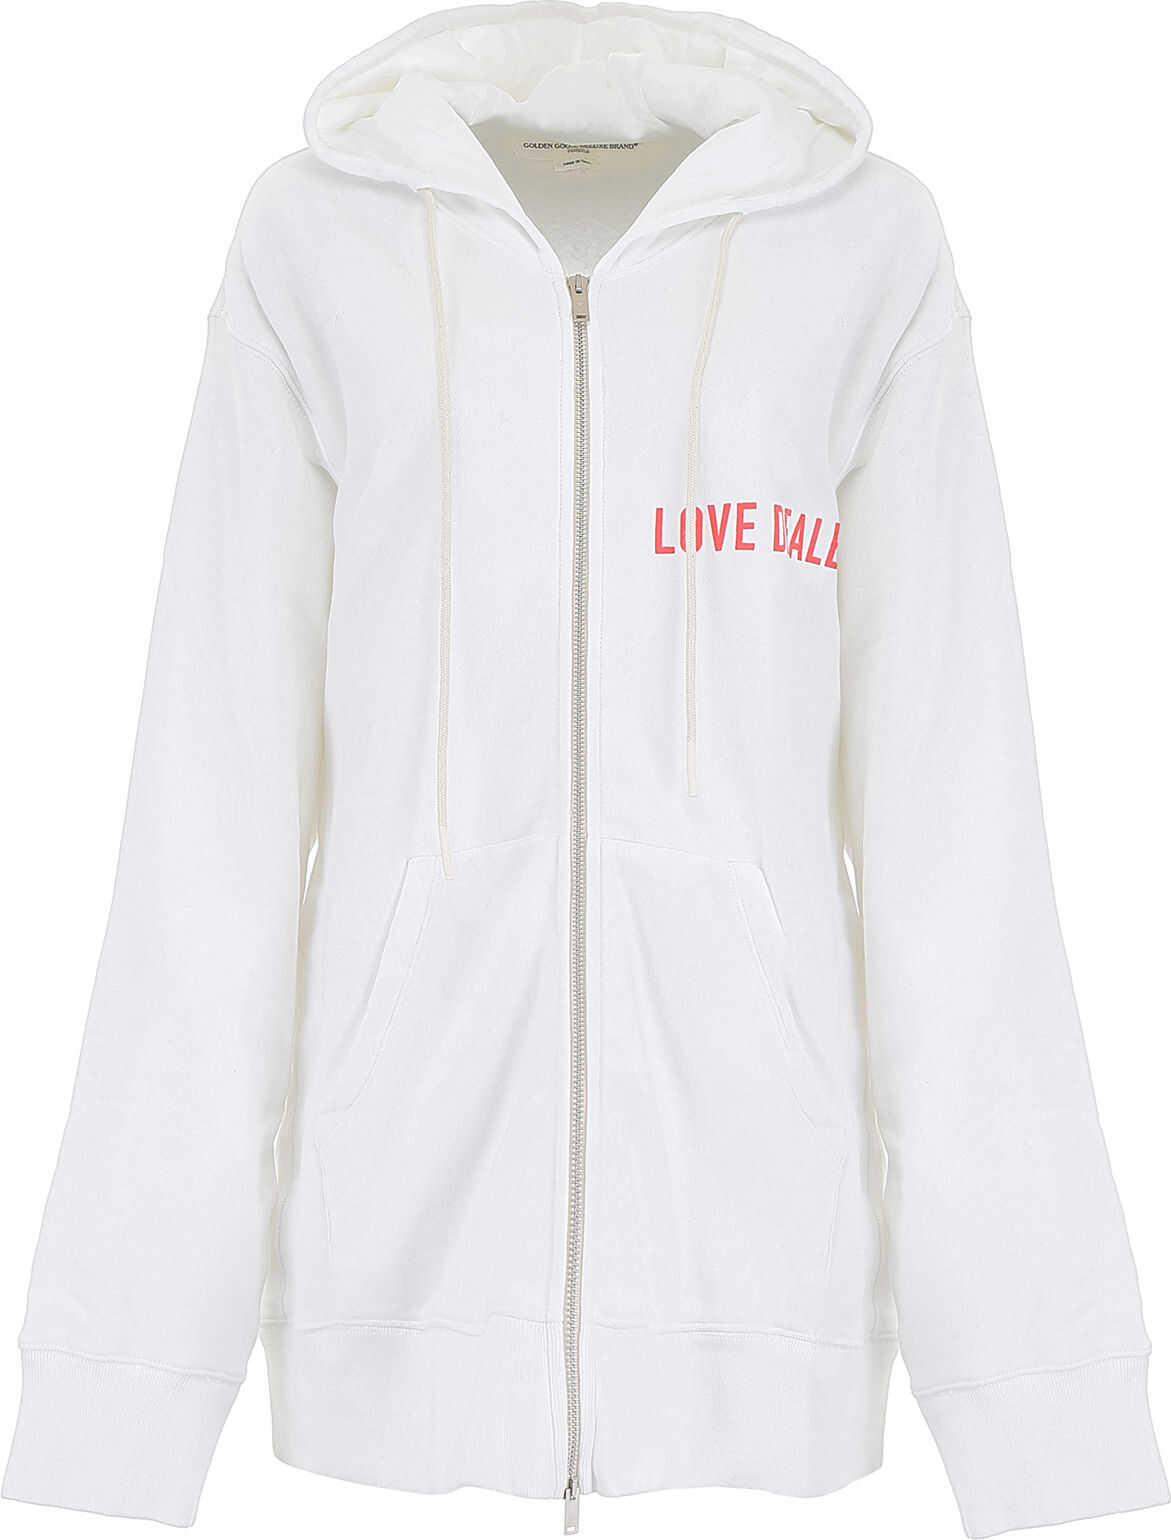 Golden Goose Love Dealer Hoodie WHITE RED